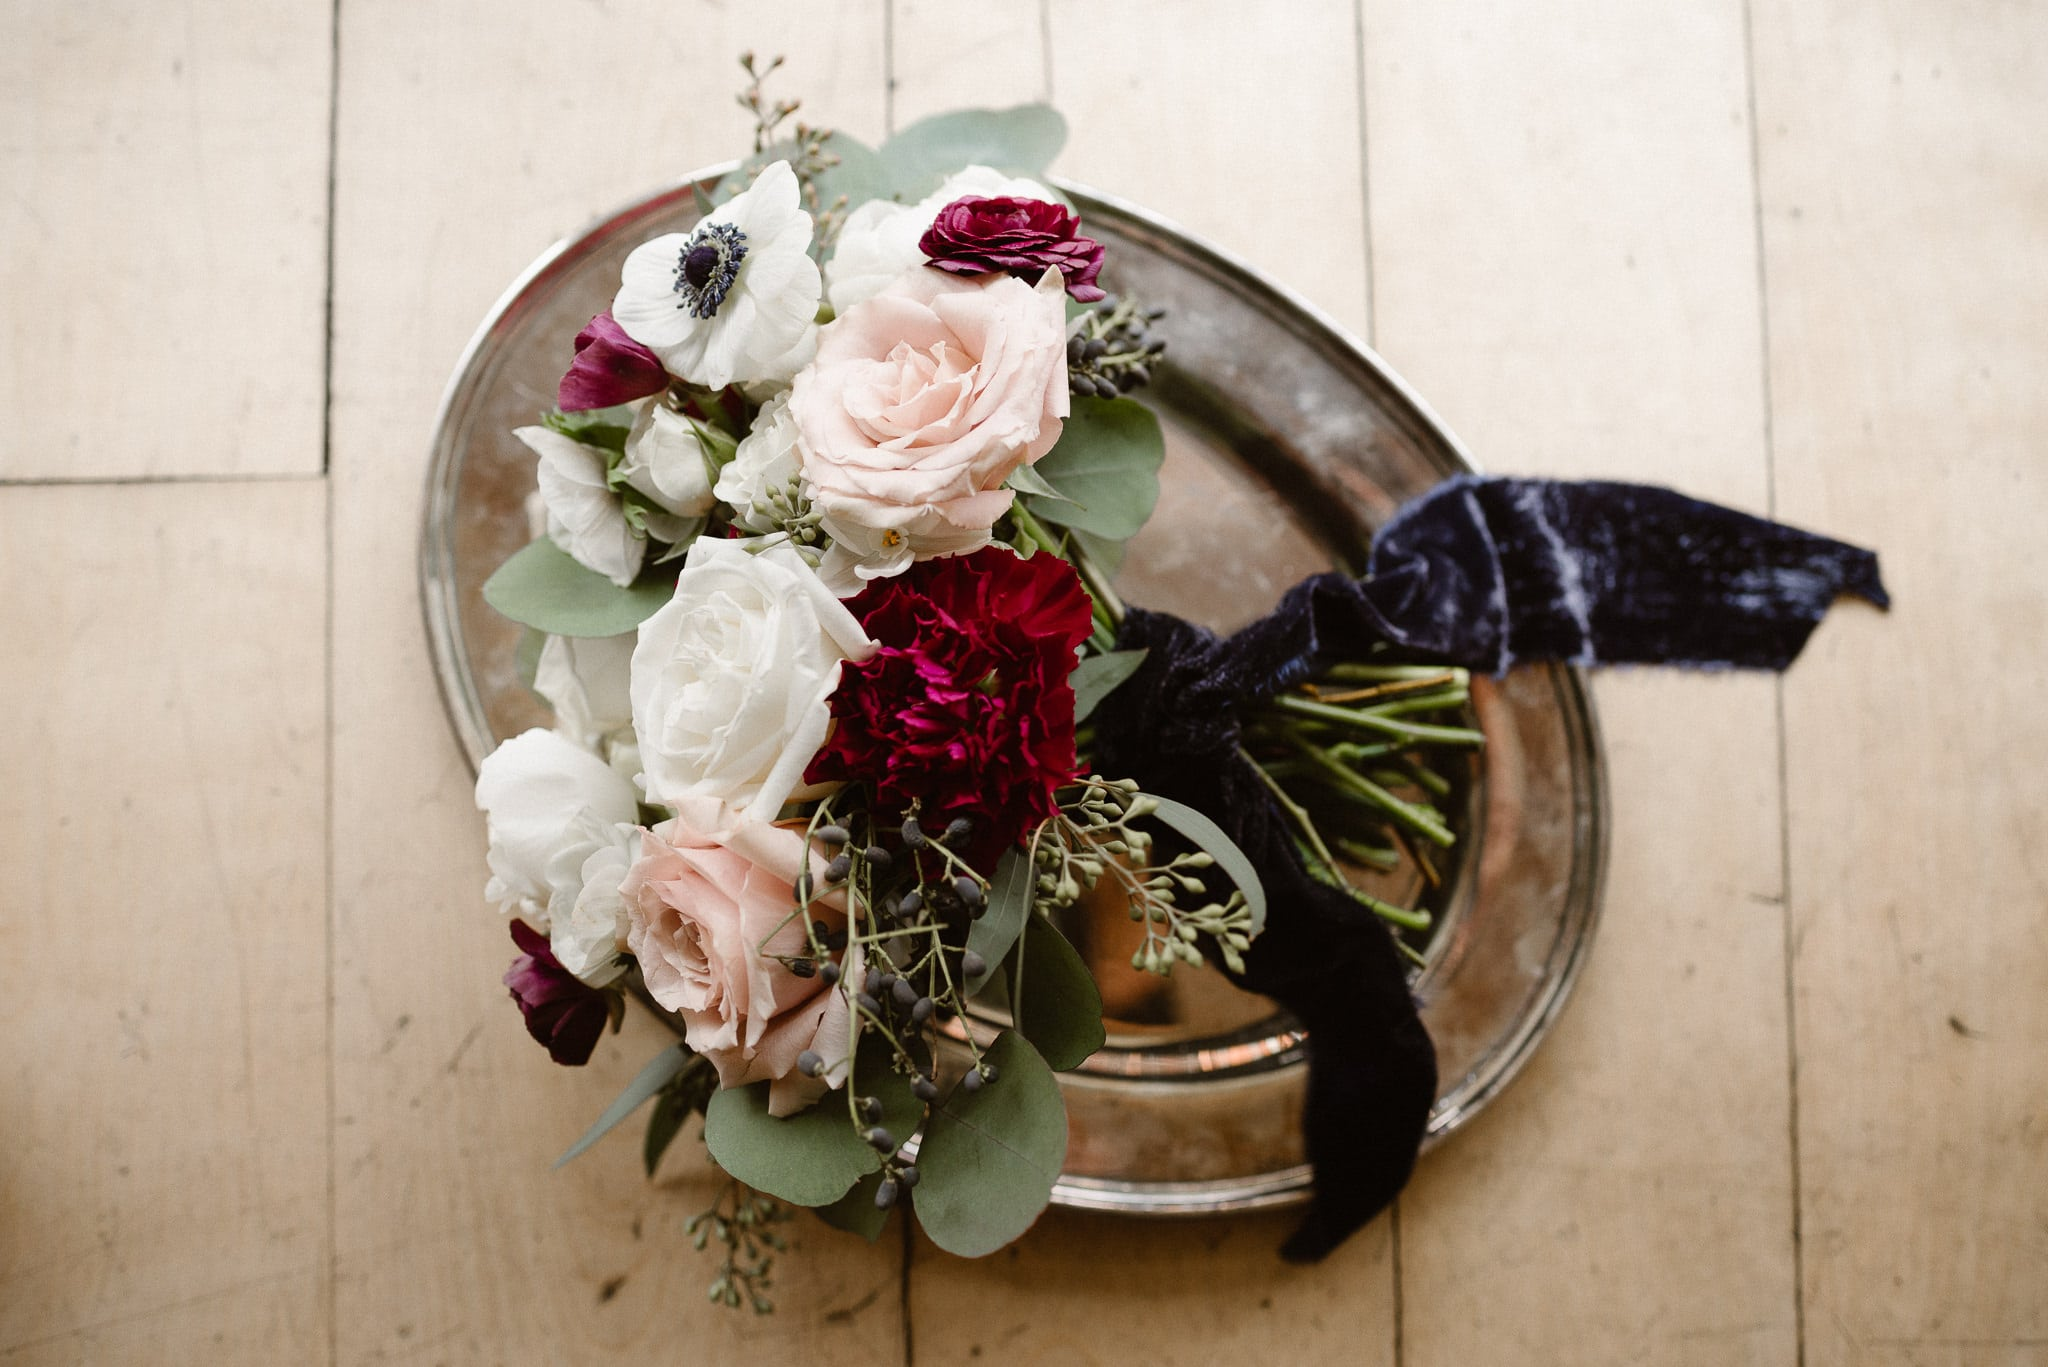 Rembrandt Yard wedding photographer, Boulder wedding photographer, Colorado Jewish wedding, classic wedding bouquet with white pink and red roses and crushed velvet ribbon